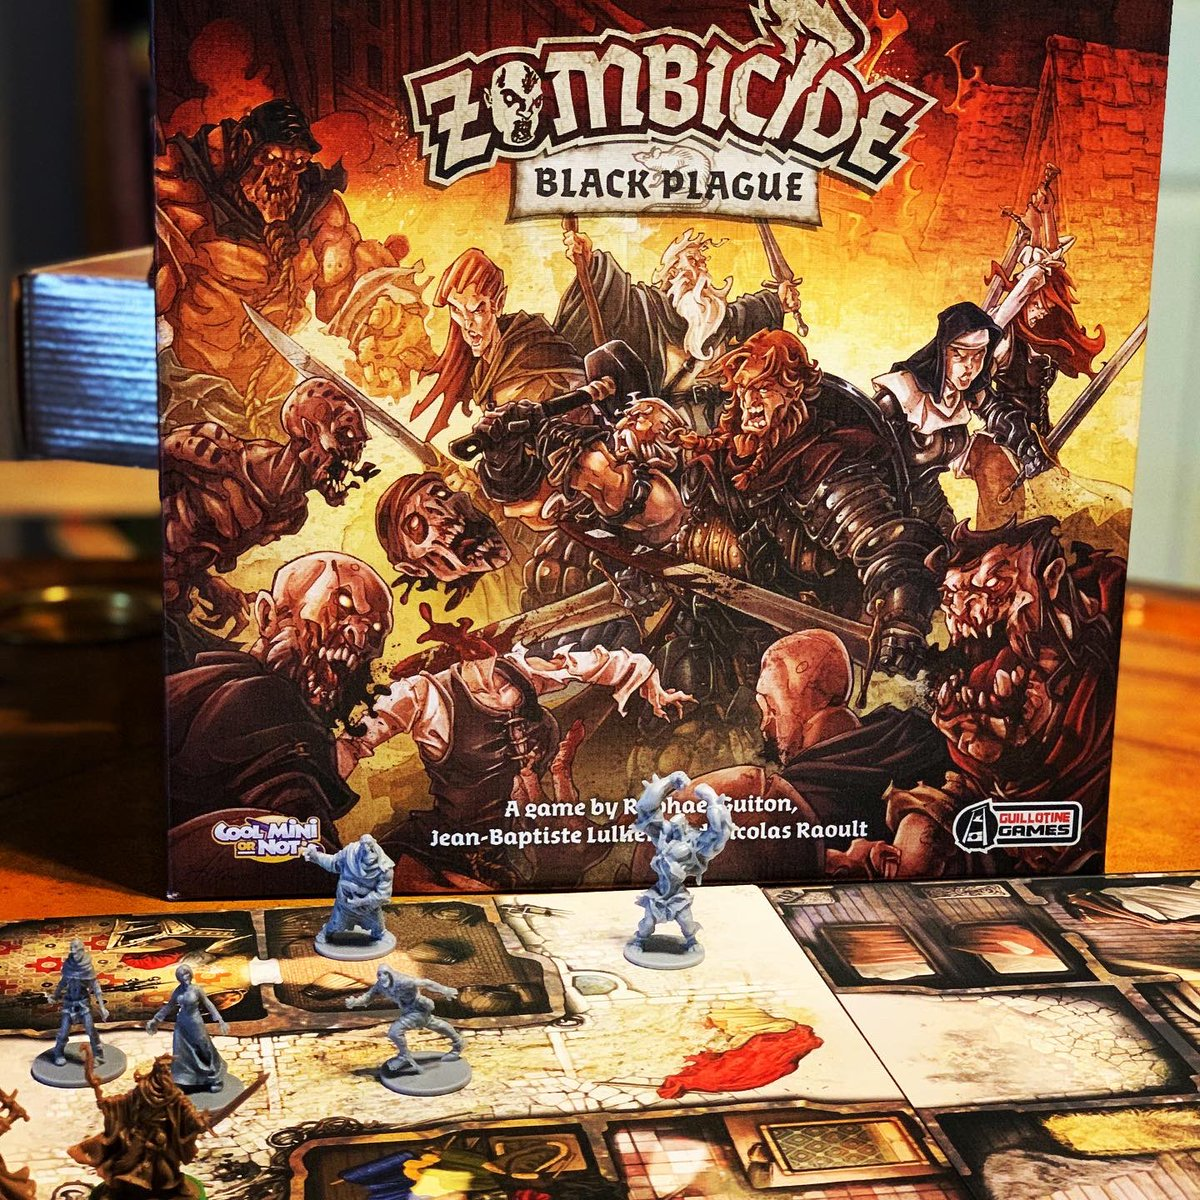 Zombicide Black Plague by @CMONGames is a zombie survival game with amazing minis and fun dice rolling combat. #lostgravitygames #boardgames #games #tabletopgames #gamenight #gaming #playmoregames #bgg #zombicide #zombicideblackplague #minis #cmon #zombie #survive https://t.co/KwrFtAwkRa